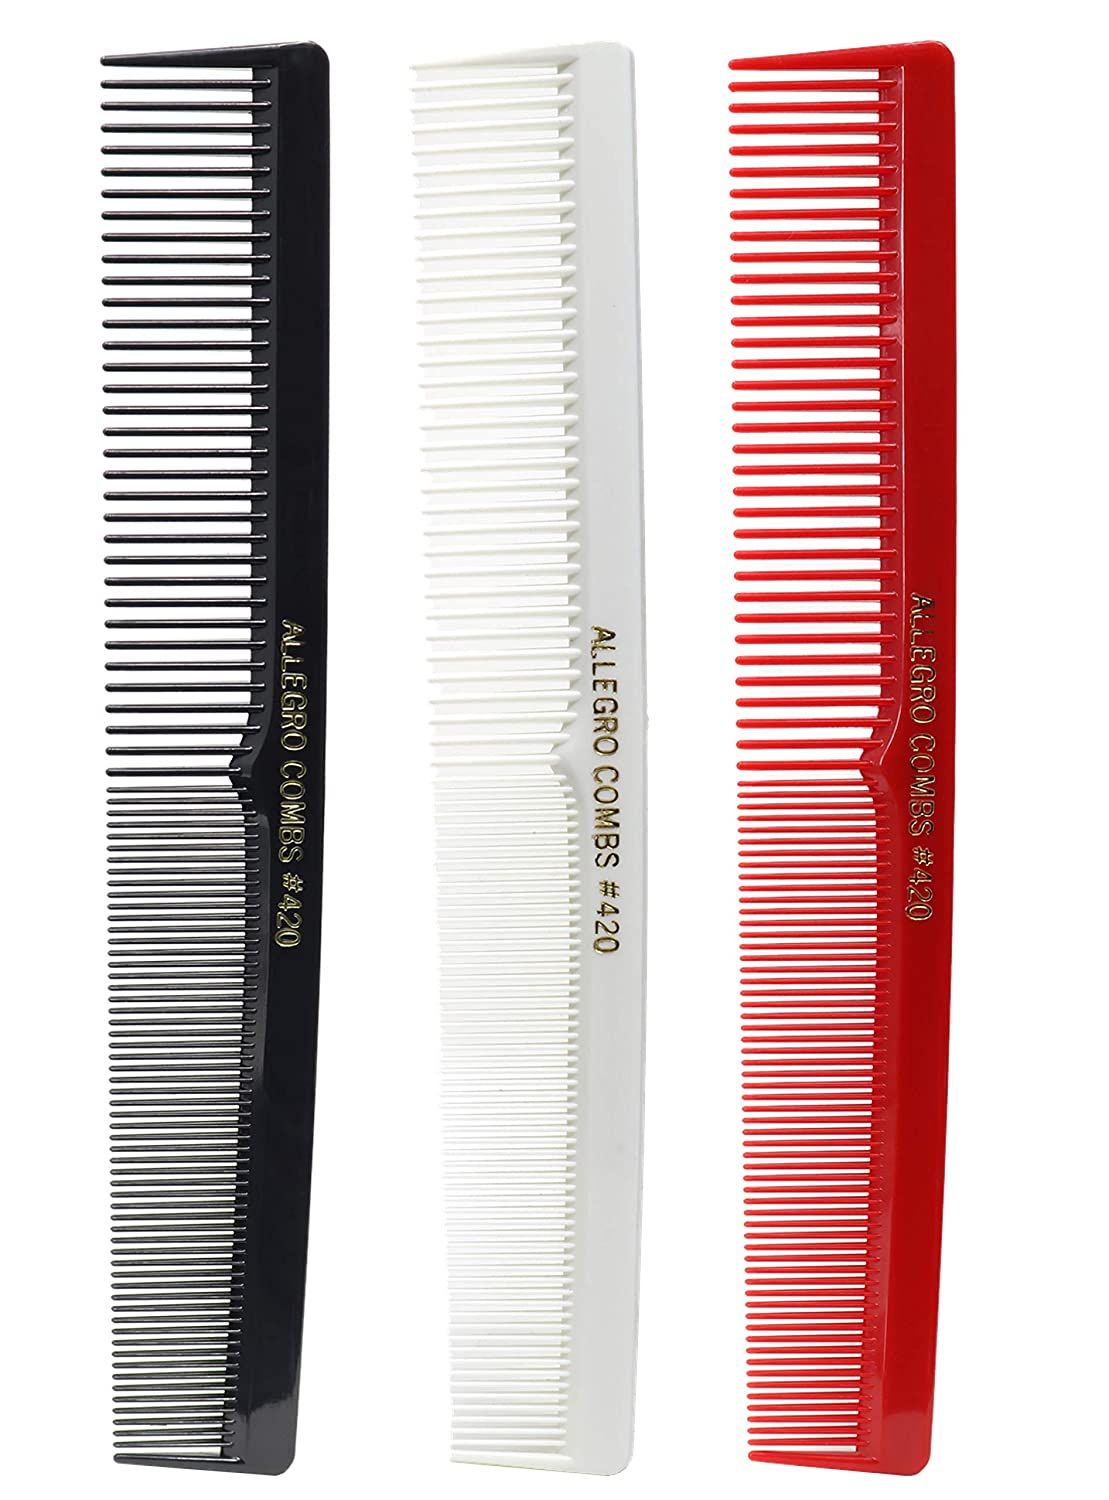 Allegro Combs 420 Hair combs Cutting Free shipping anywhere in the nation Columbus Mall C Comb Barber Set